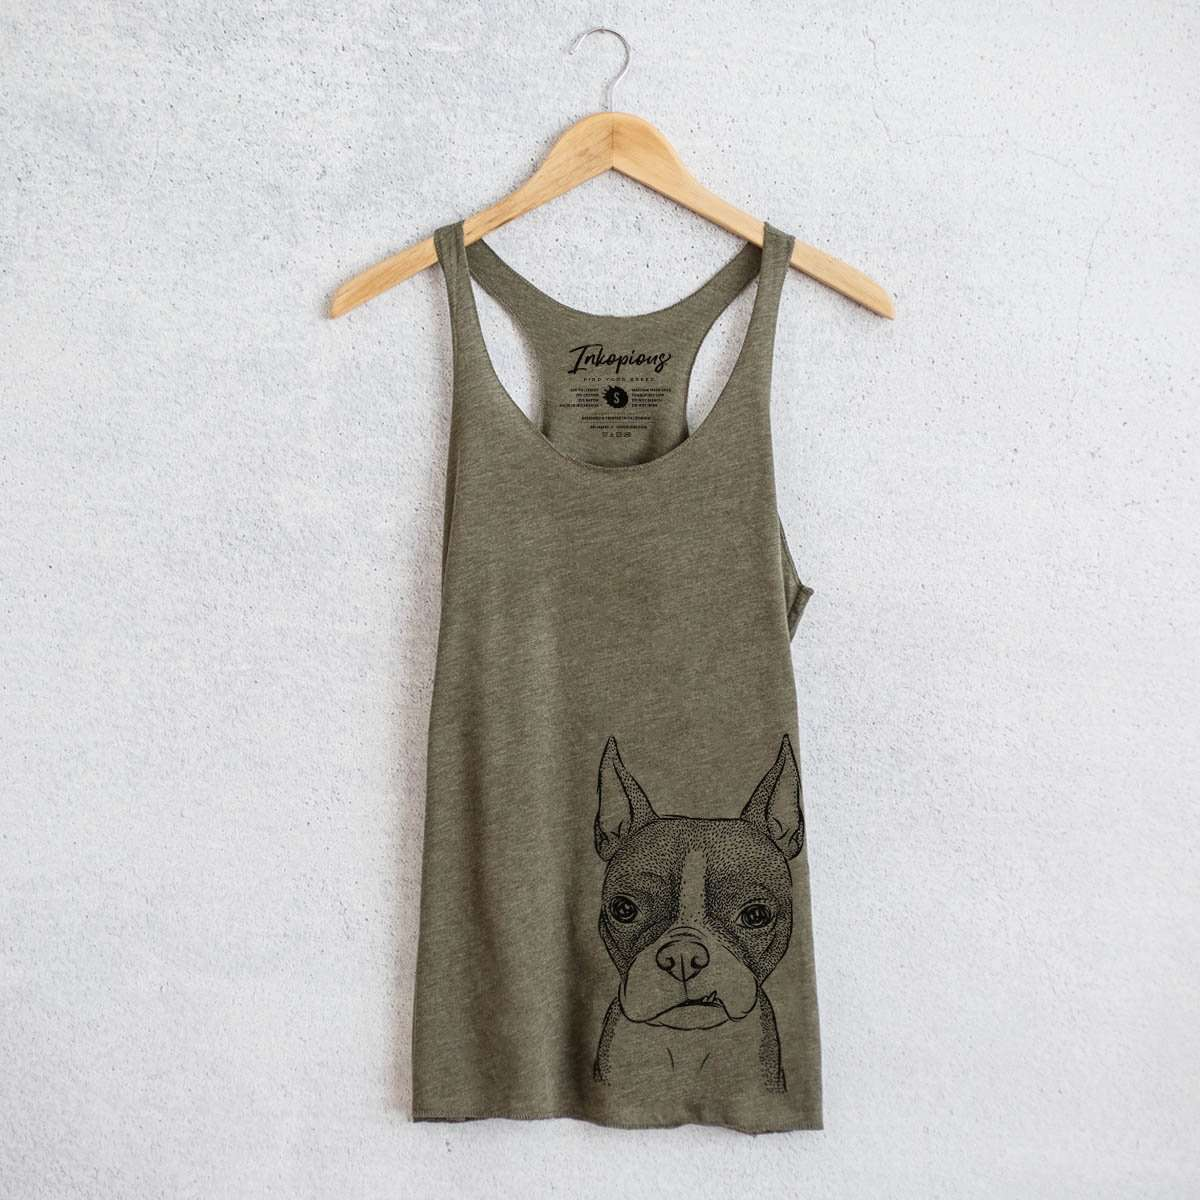 Bean the Boston Terrier - Tri-Blend Racerback Tank Top